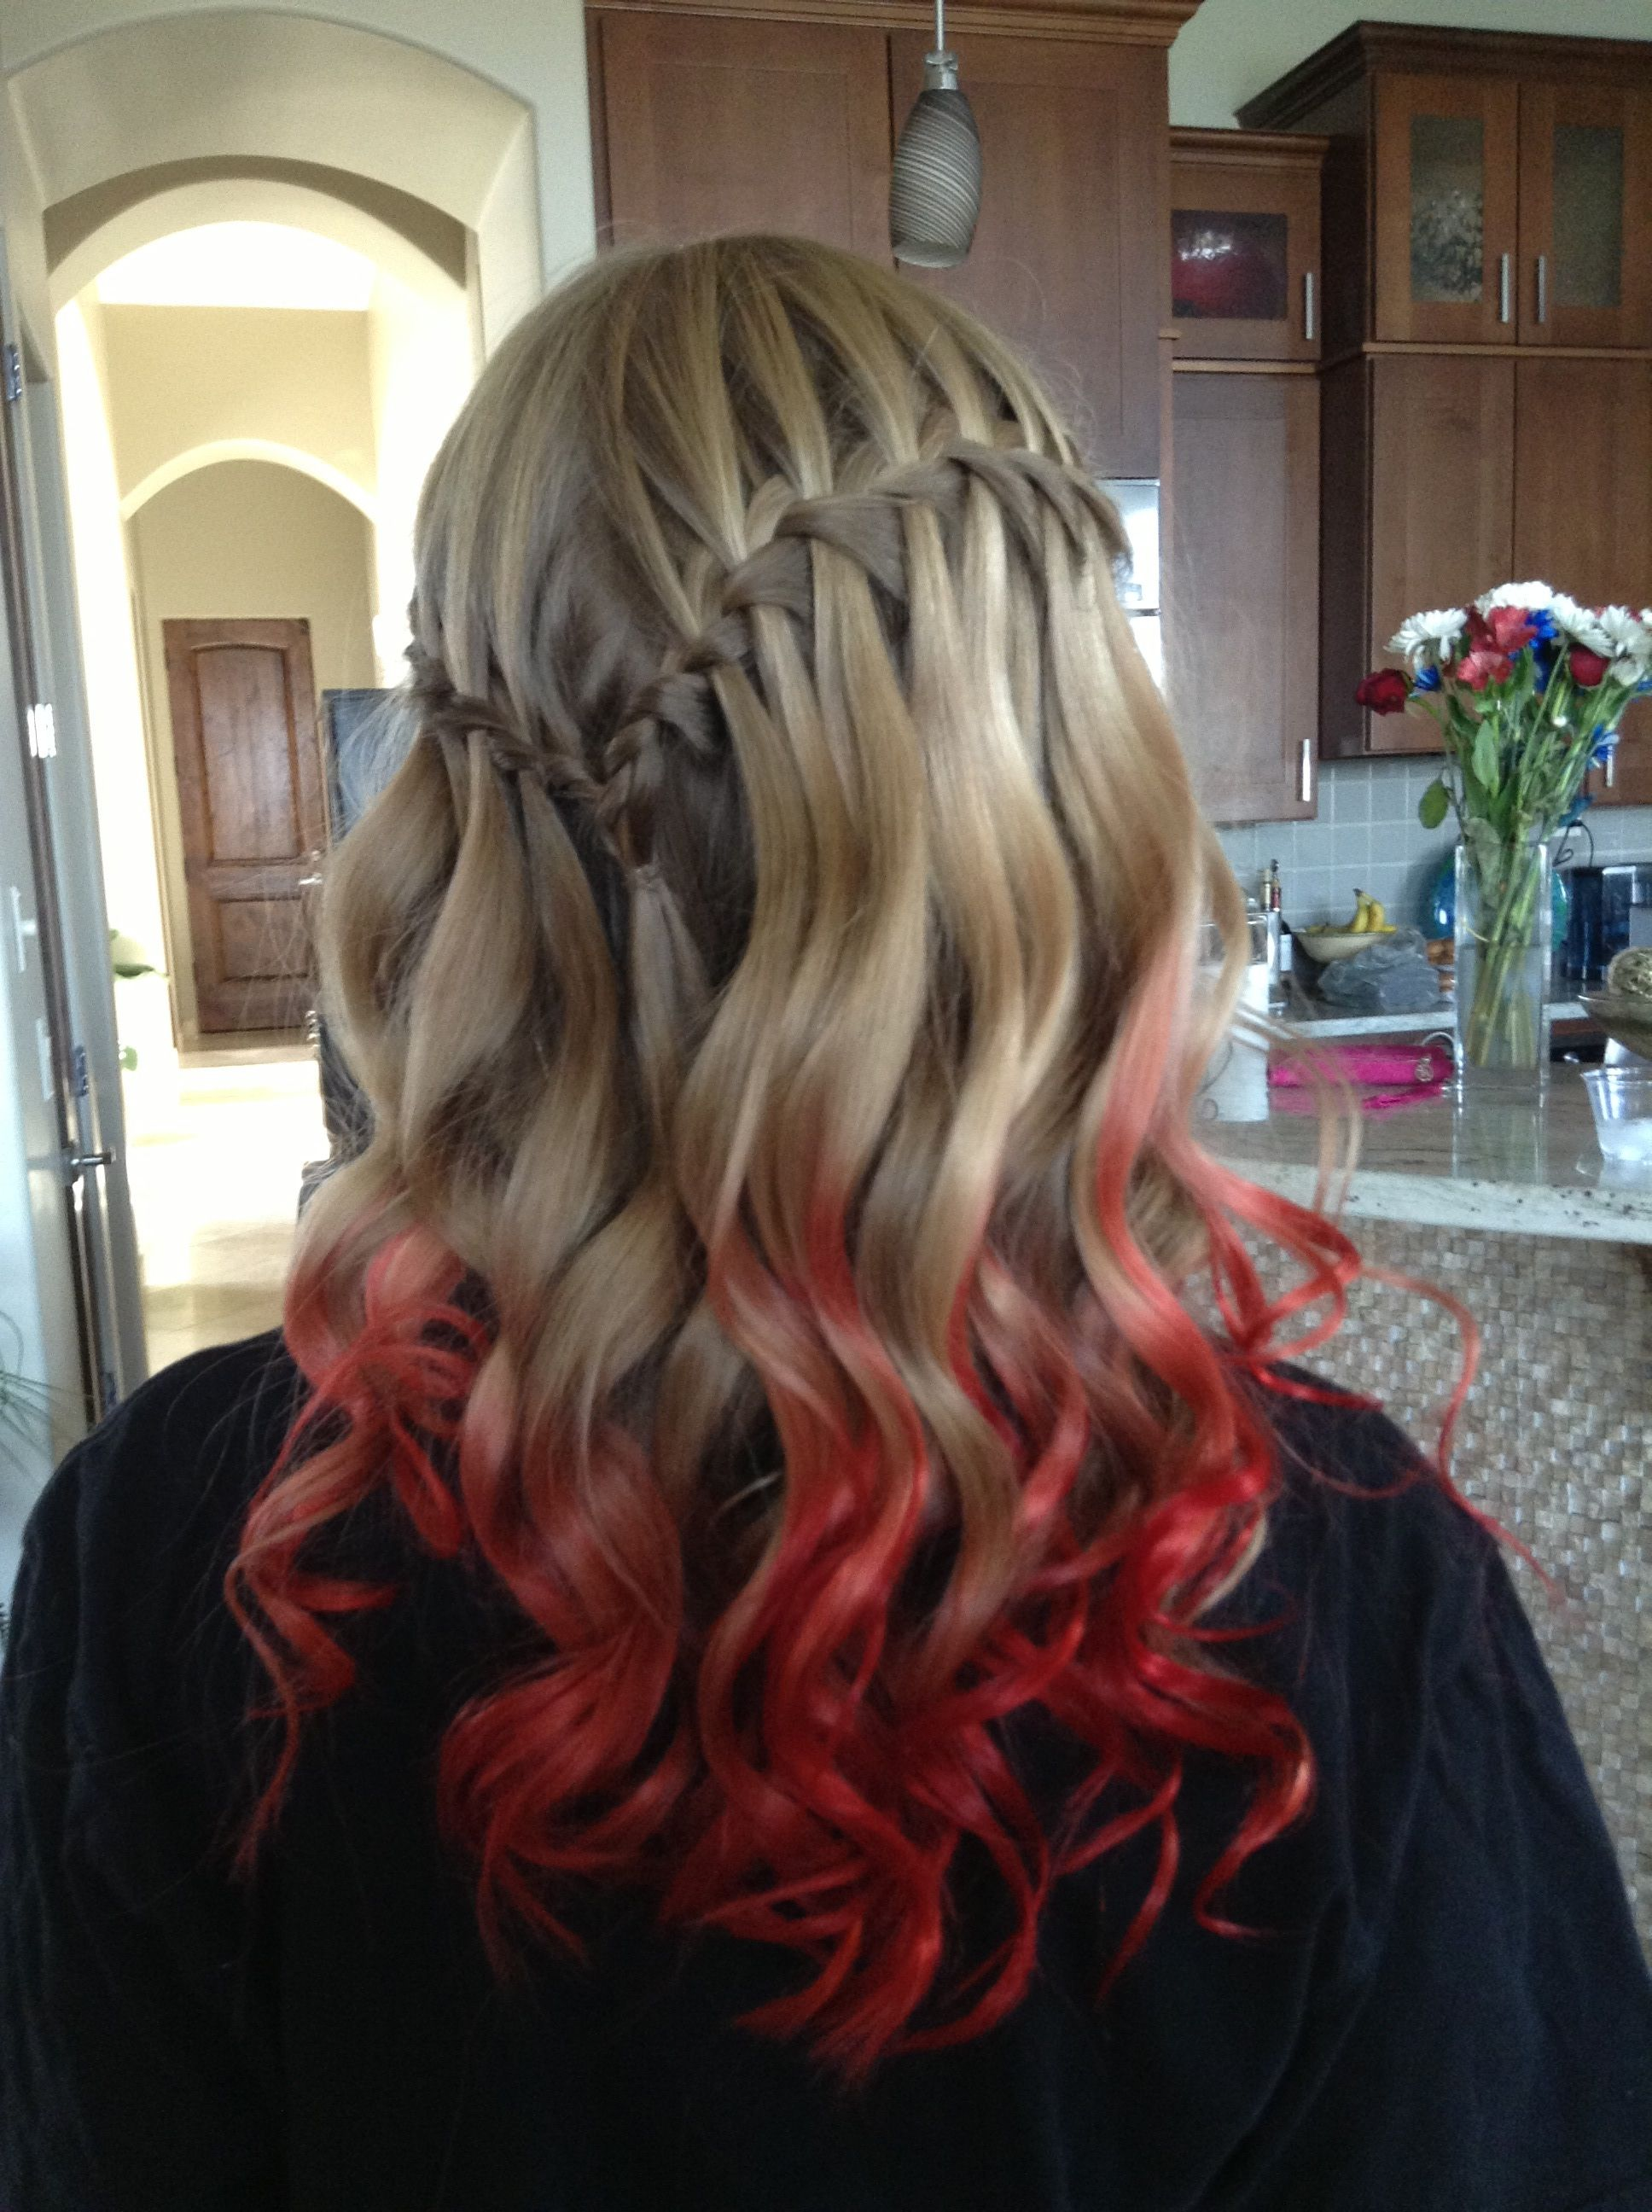 Red Ombre Hair Kool Aid Dip Dye This Is Actually Really Pretty Dip Dye Hair Kool Aid Hair Blonde Hair With Red Tips